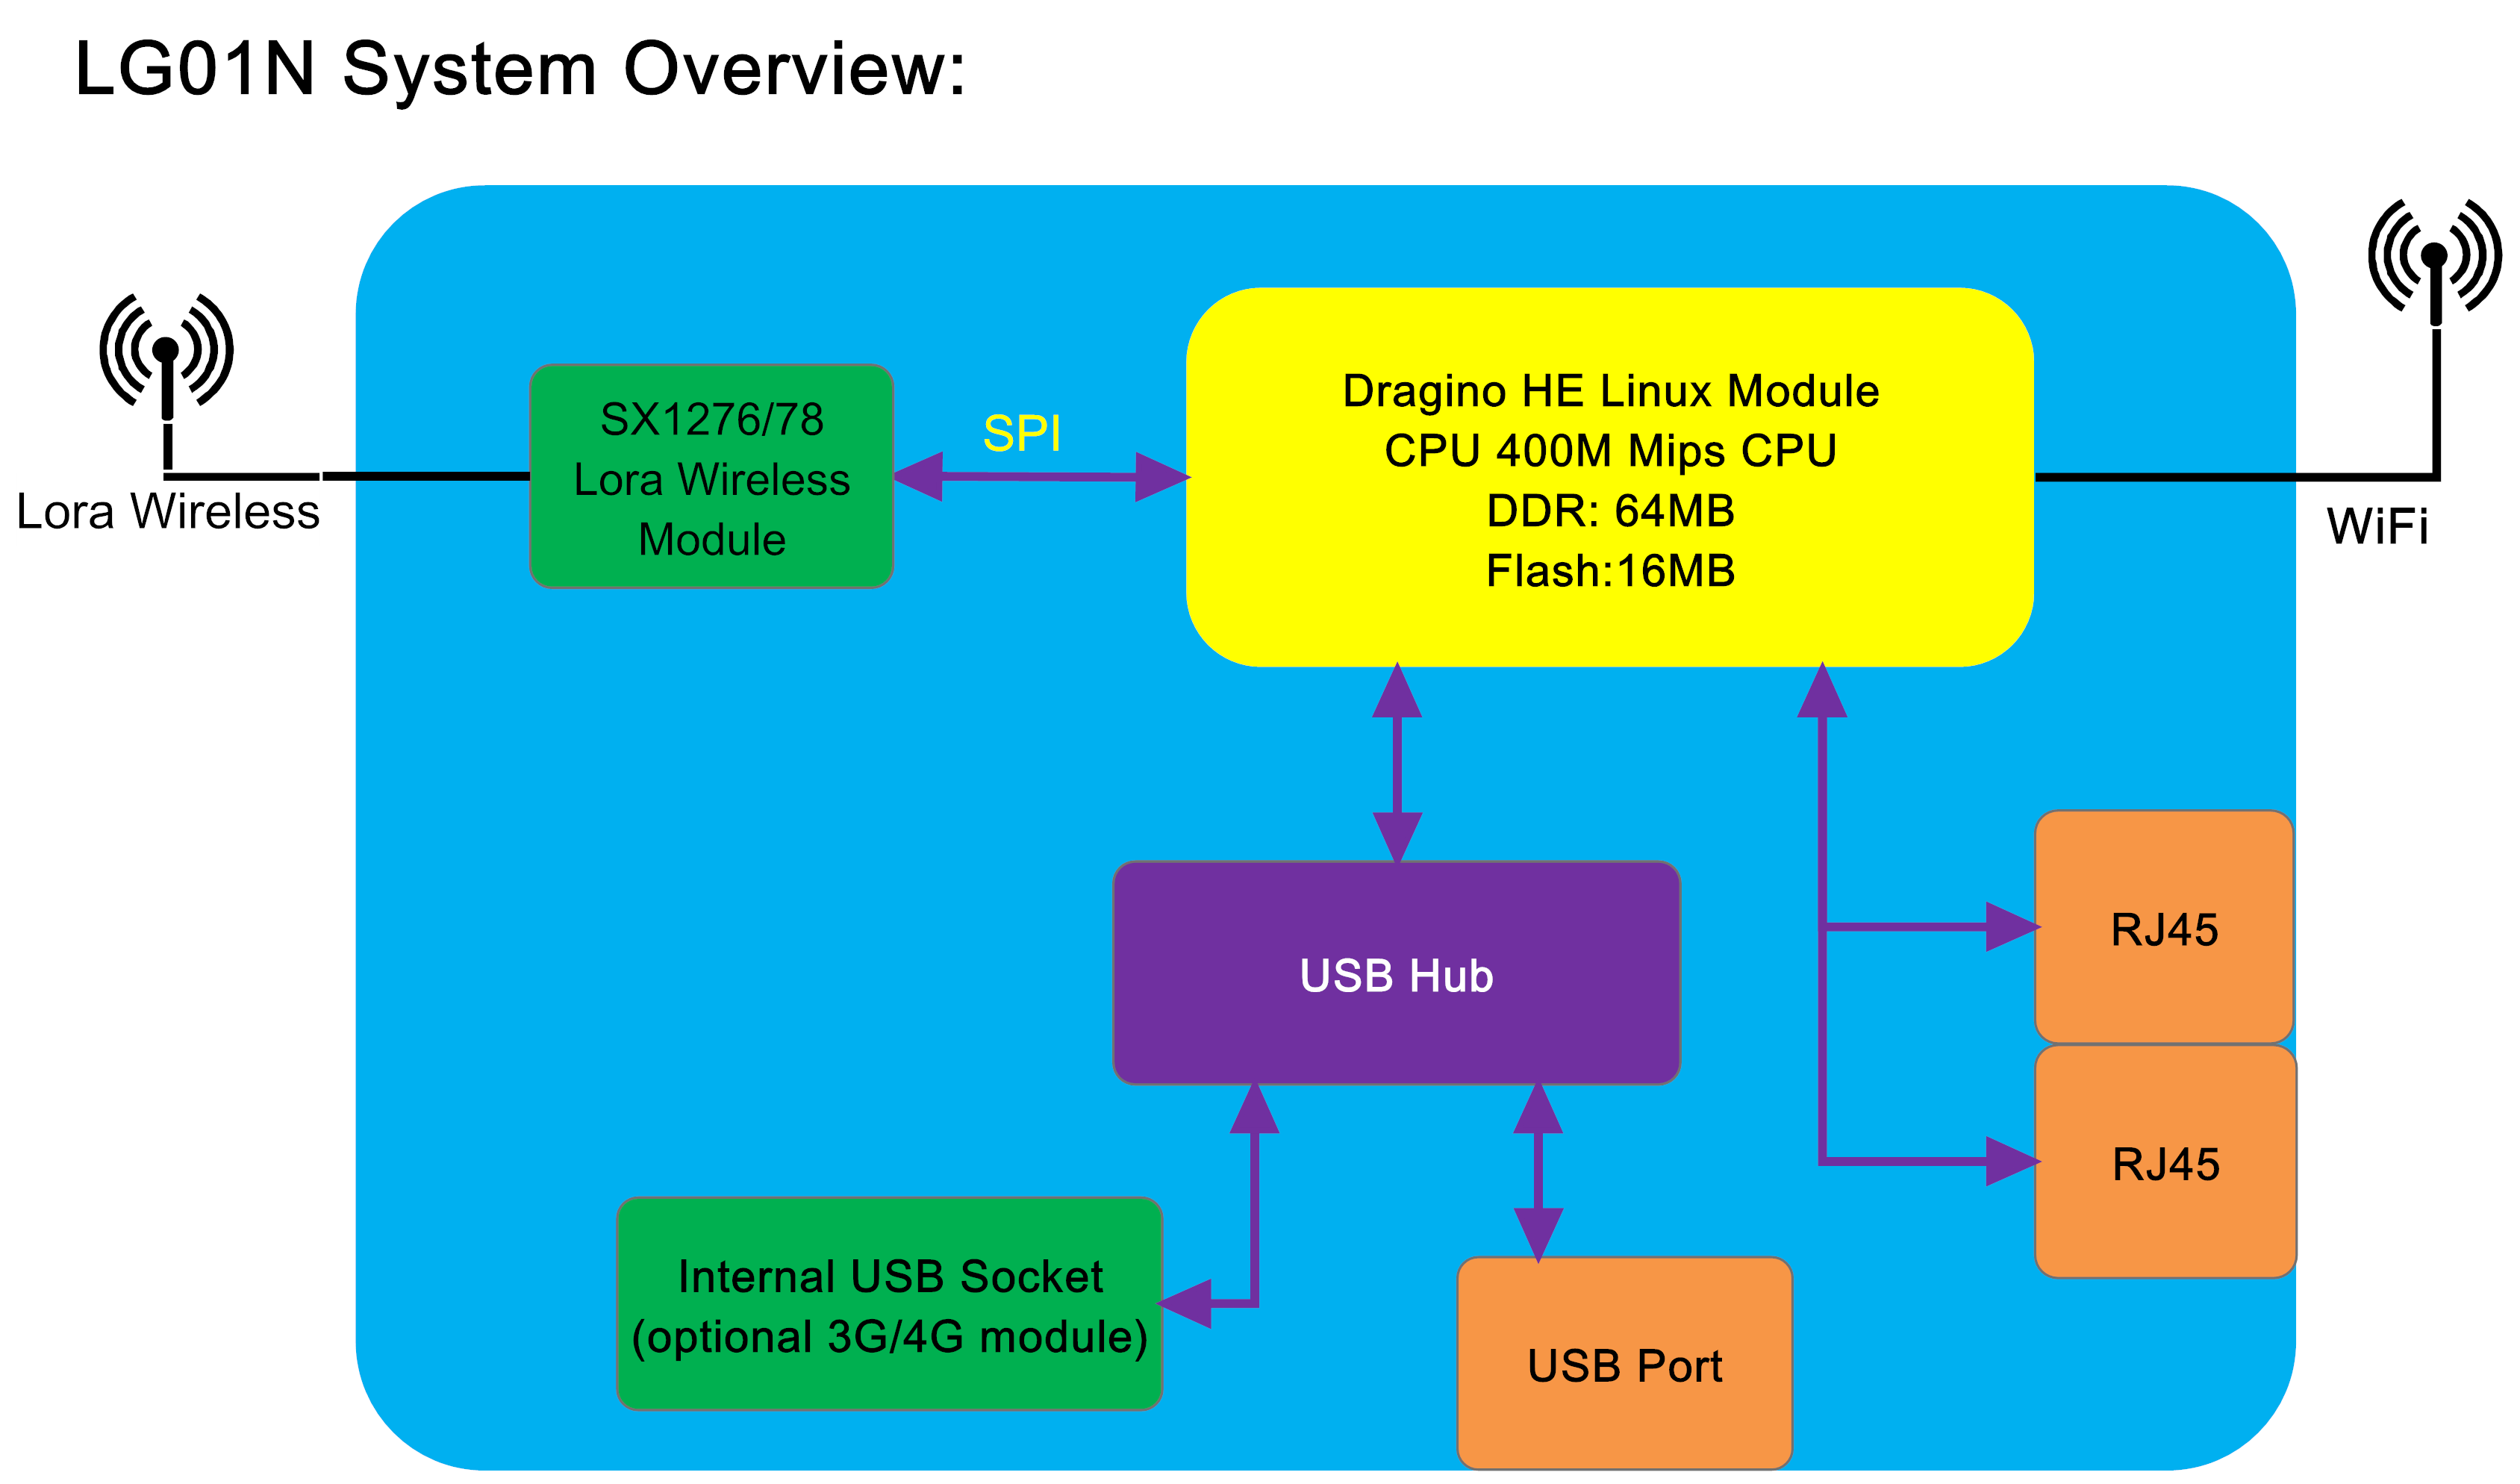 LG01 System Overview